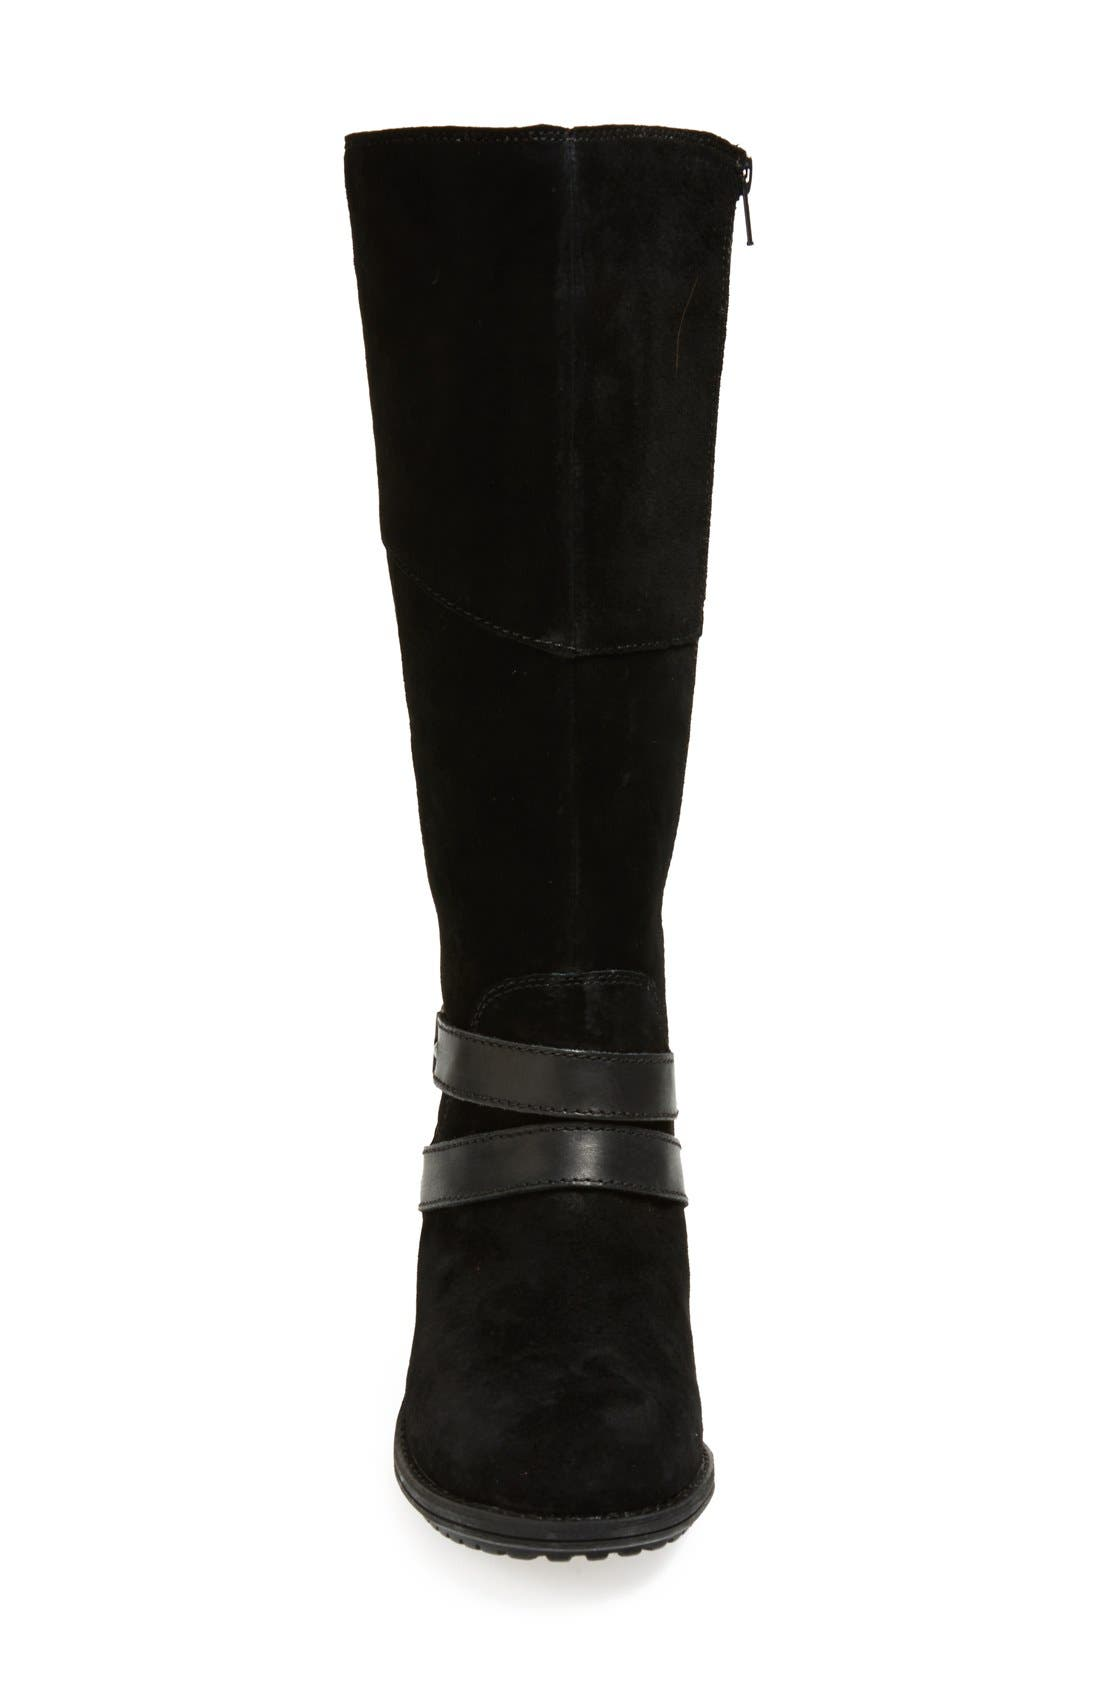 THE NORTH FACE,                             'Bridgeton' Waterproof Heatseeker<sup>™</sup> Insulated Riding Boot,                             Alternate thumbnail 4, color,                             001